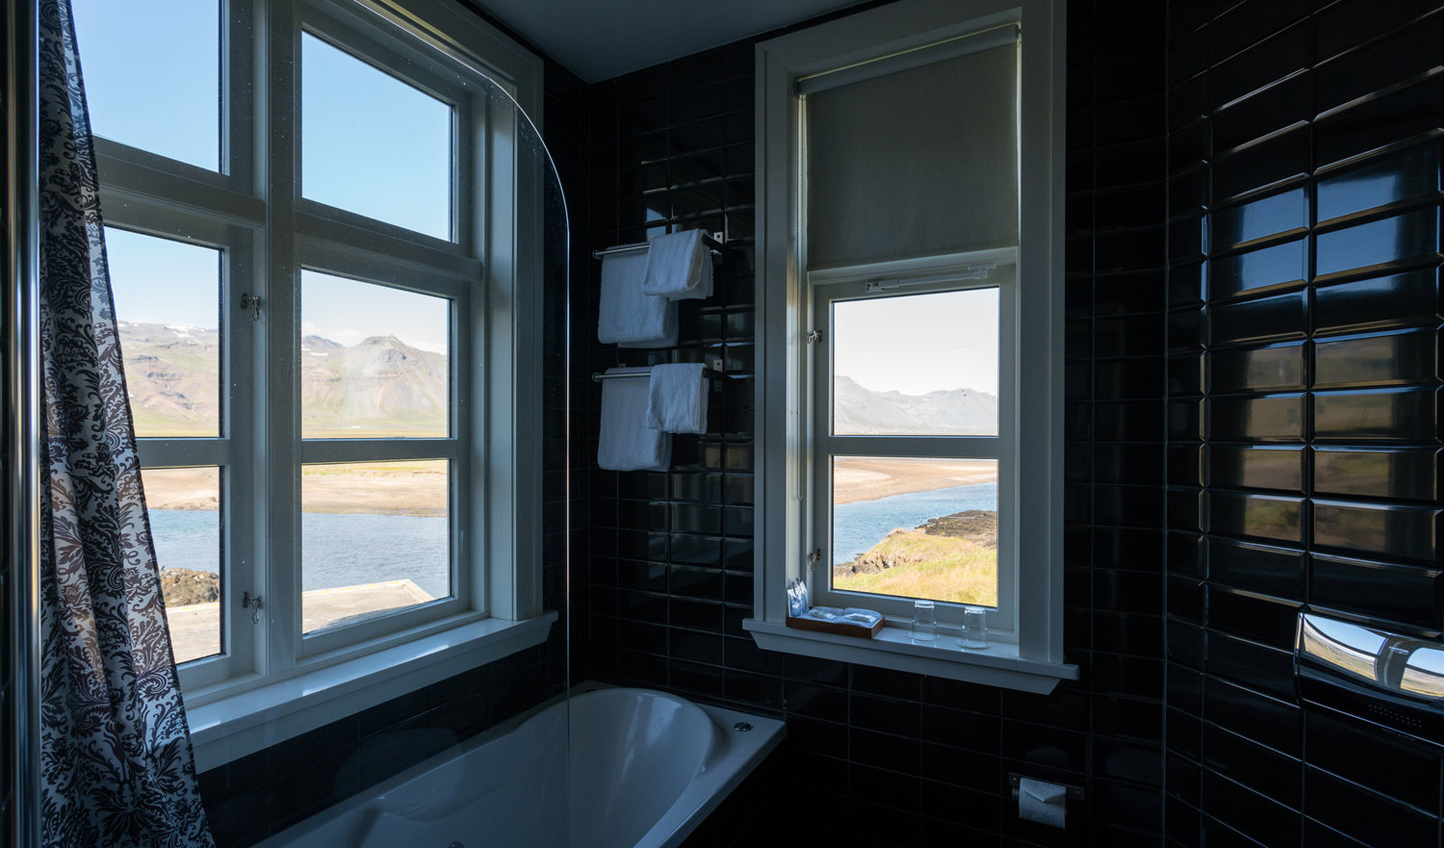 From your bedroom to your bathroom, enjoy spectacular scenic views